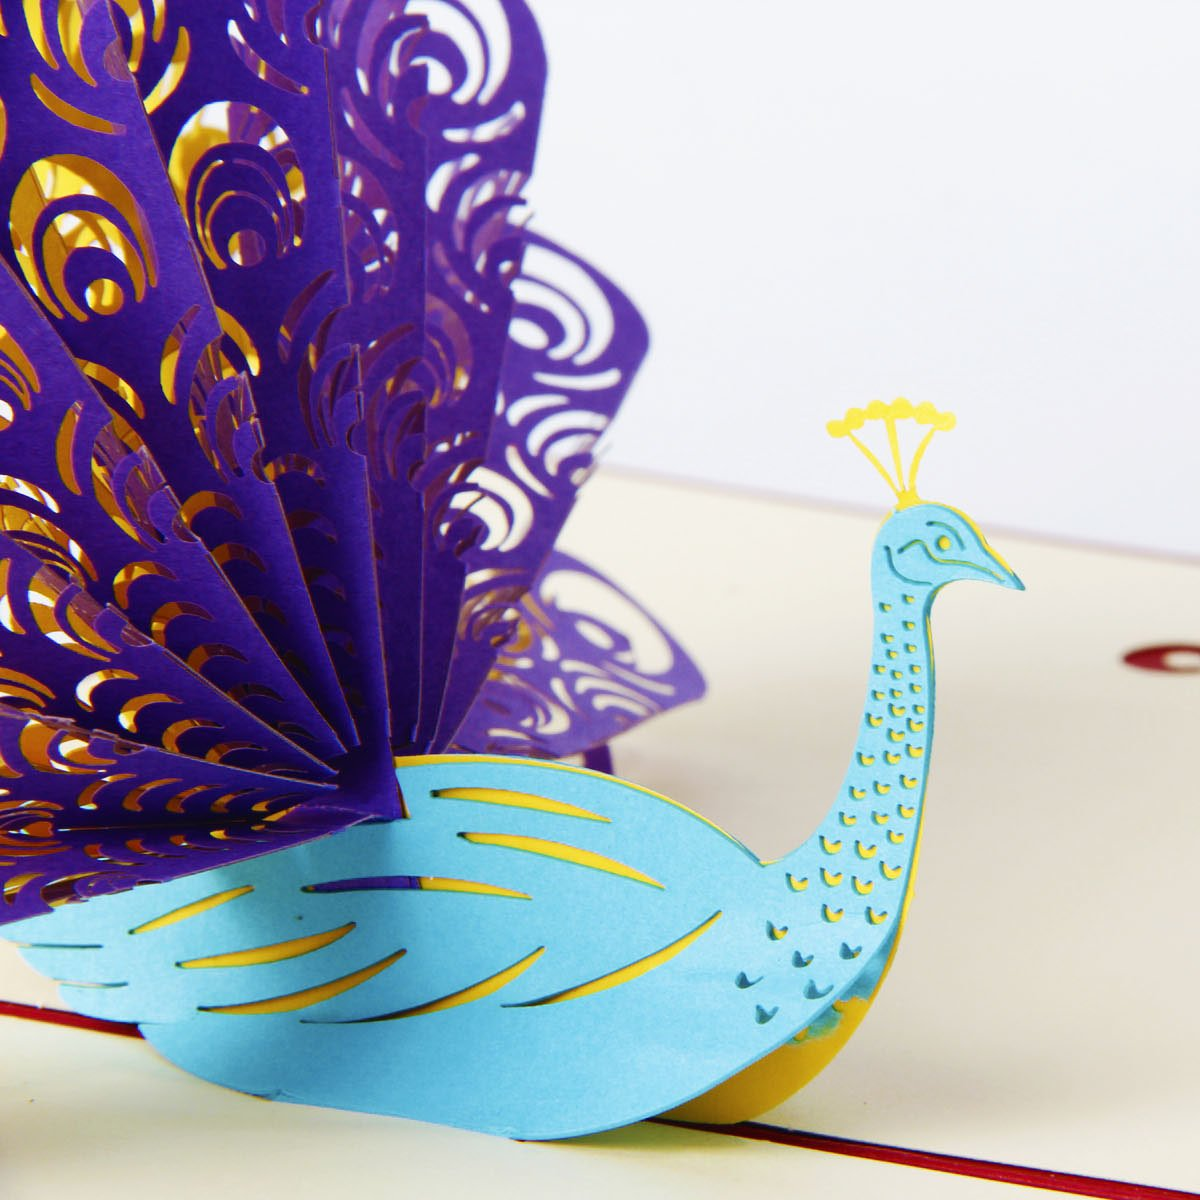 Amazon paper spiritz peacock pop up birthday card for wife amazon paper spiritz peacock pop up birthday card for wife husband kids day card and envelopes handmade 3d anniversary wedding cards graduation kristyandbryce Image collections